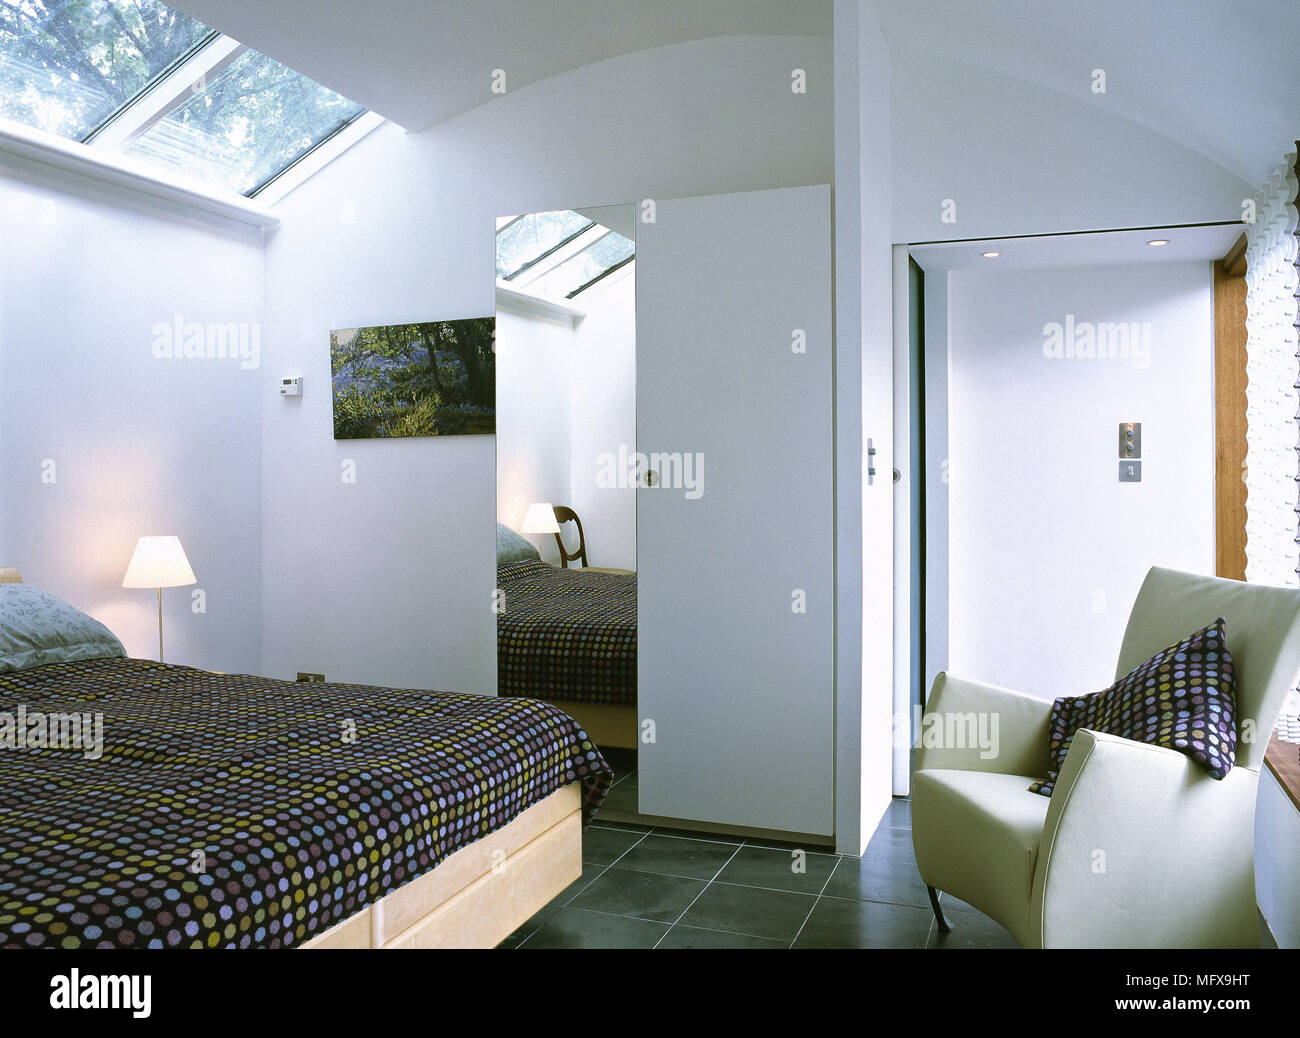 Attic Bedroom With Curved Ceiling And Skylights.   Stock Image